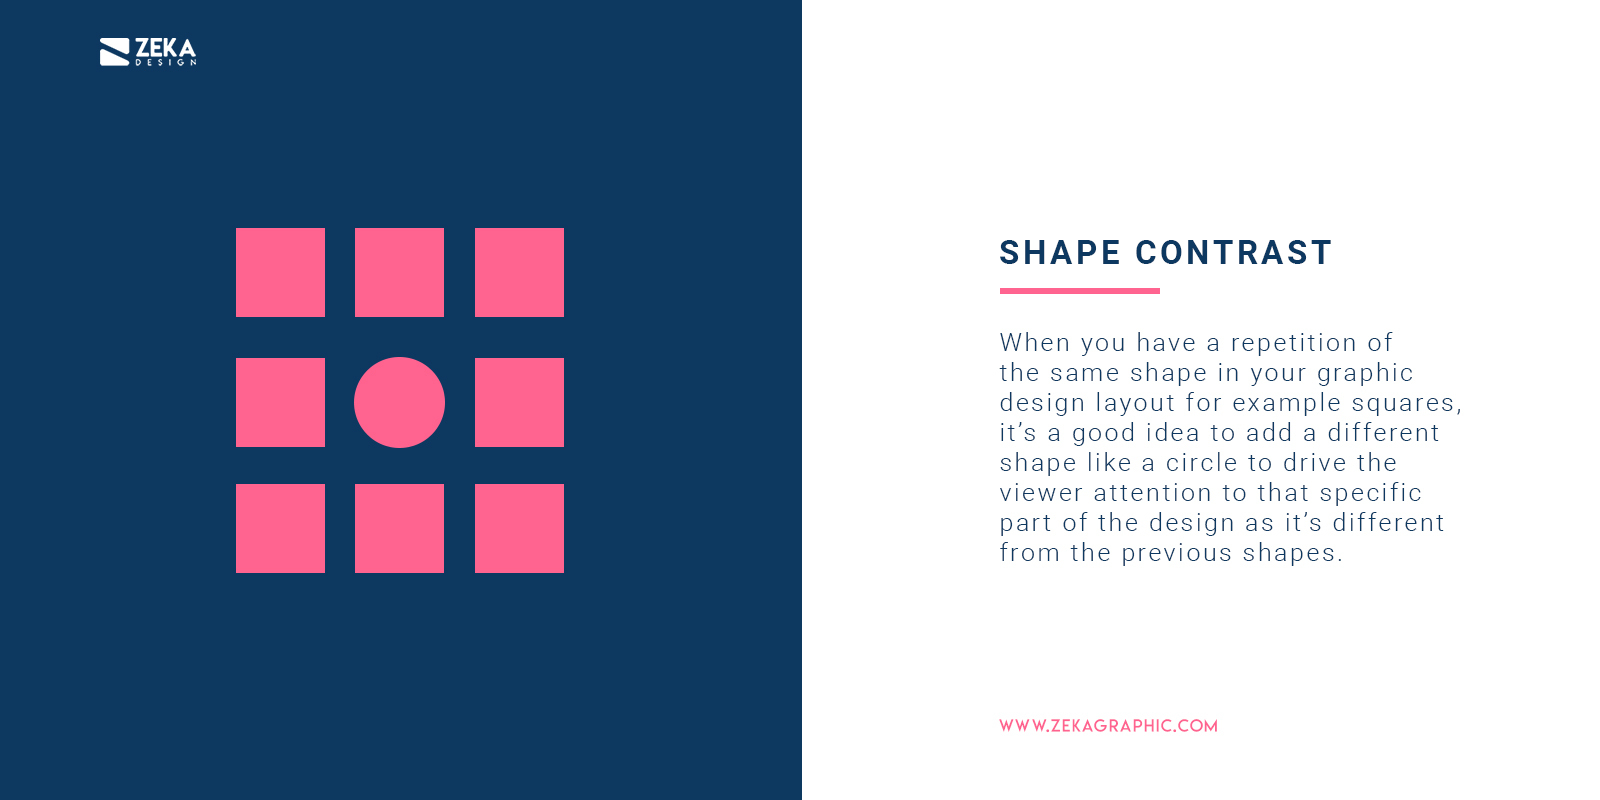 How To Use Shape Contrast in Graphic Design